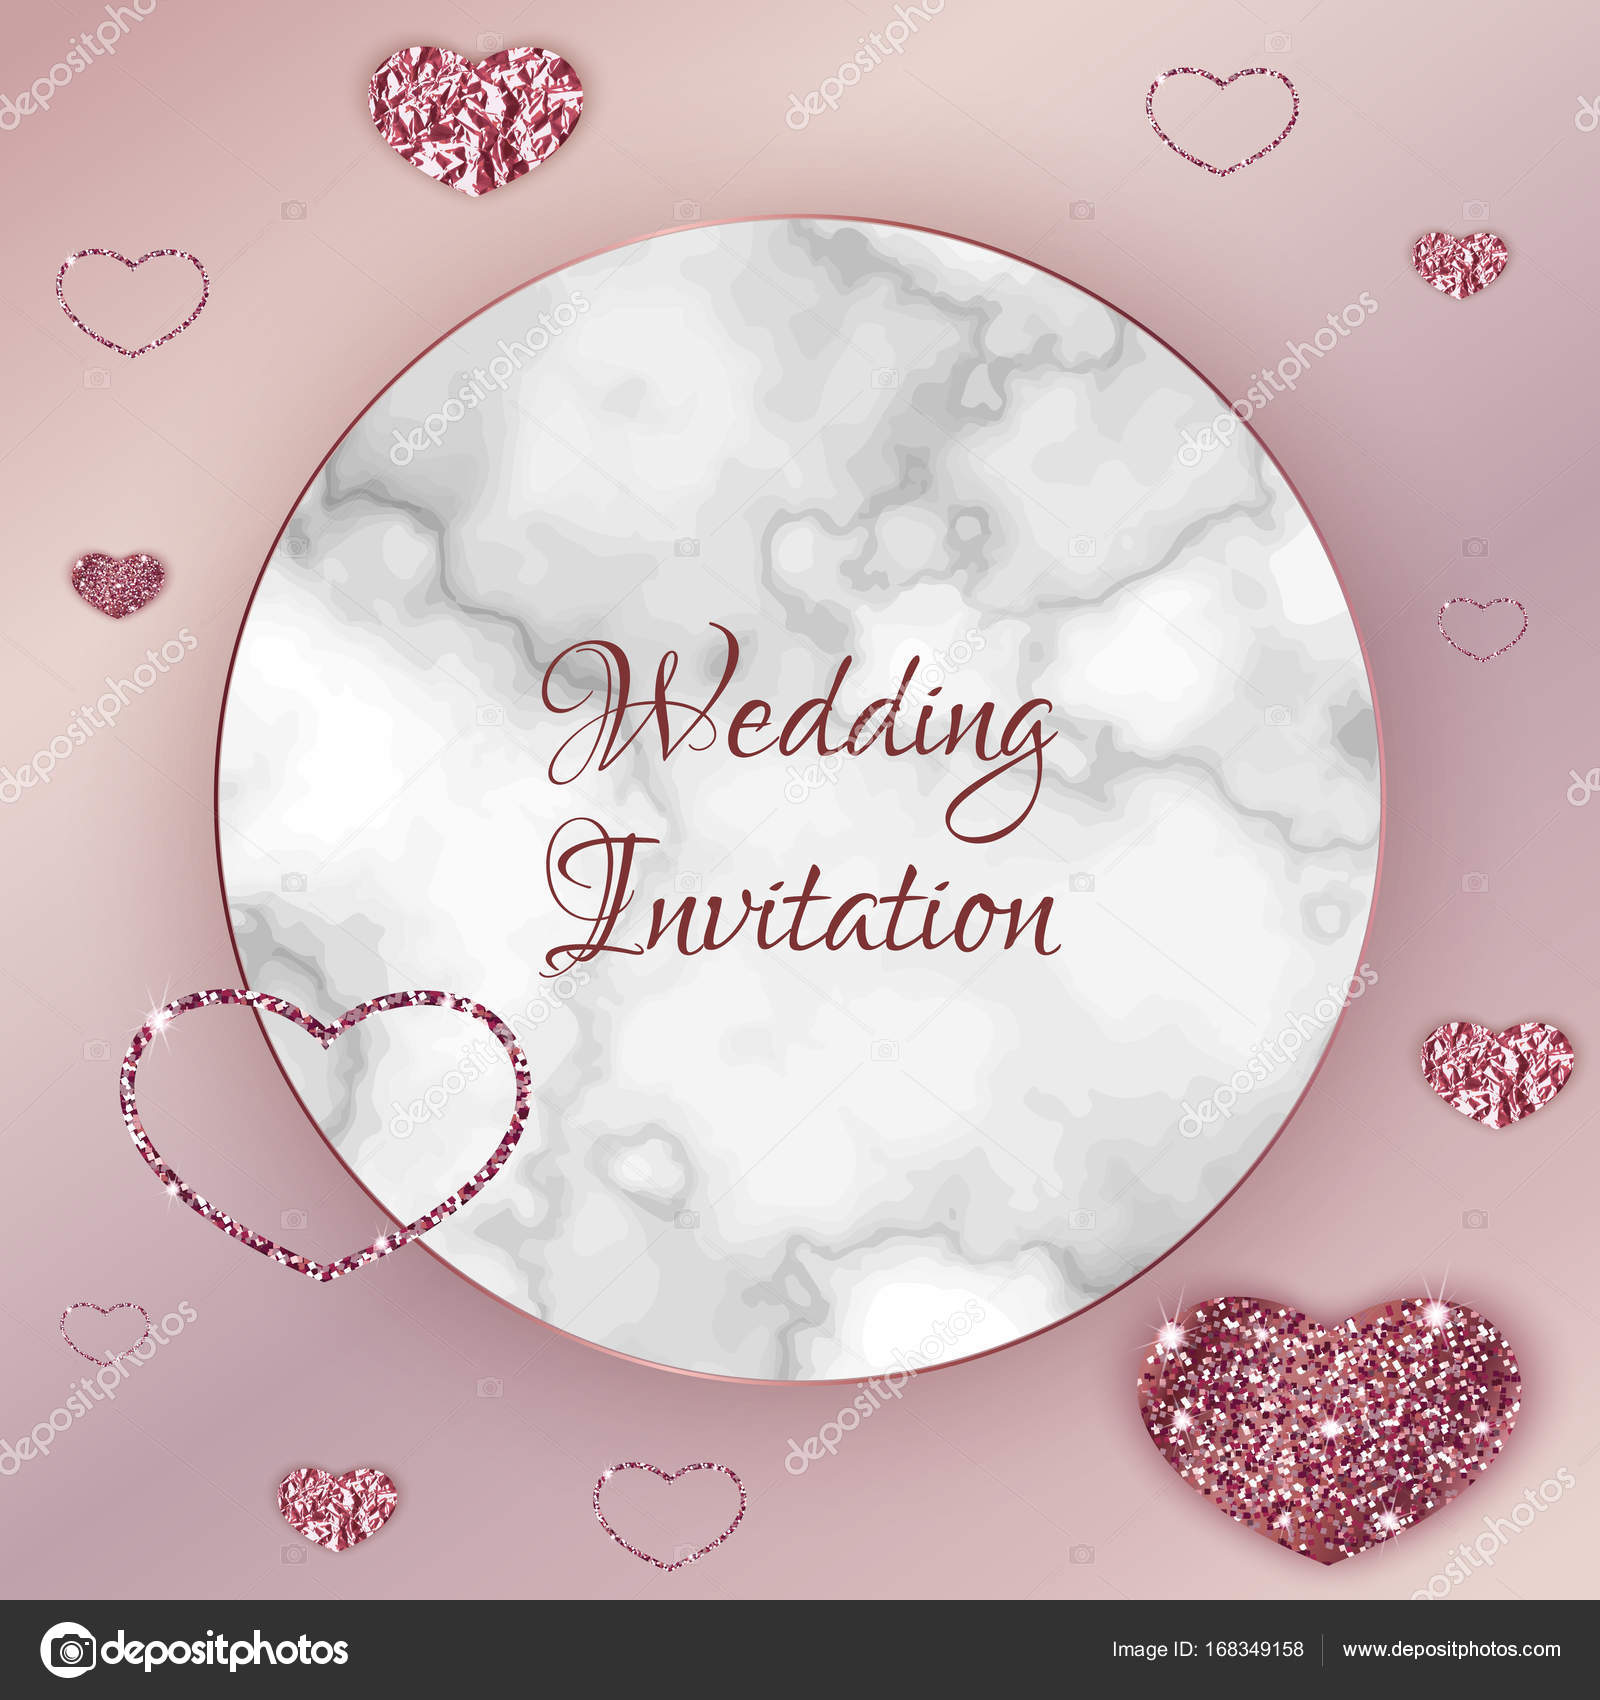 Great Wallpaper Marble Heart - depositphotos_168349158-stock-illustration-geometric-wedding-invitation-marble-texture  You Should Have_41774.jpg